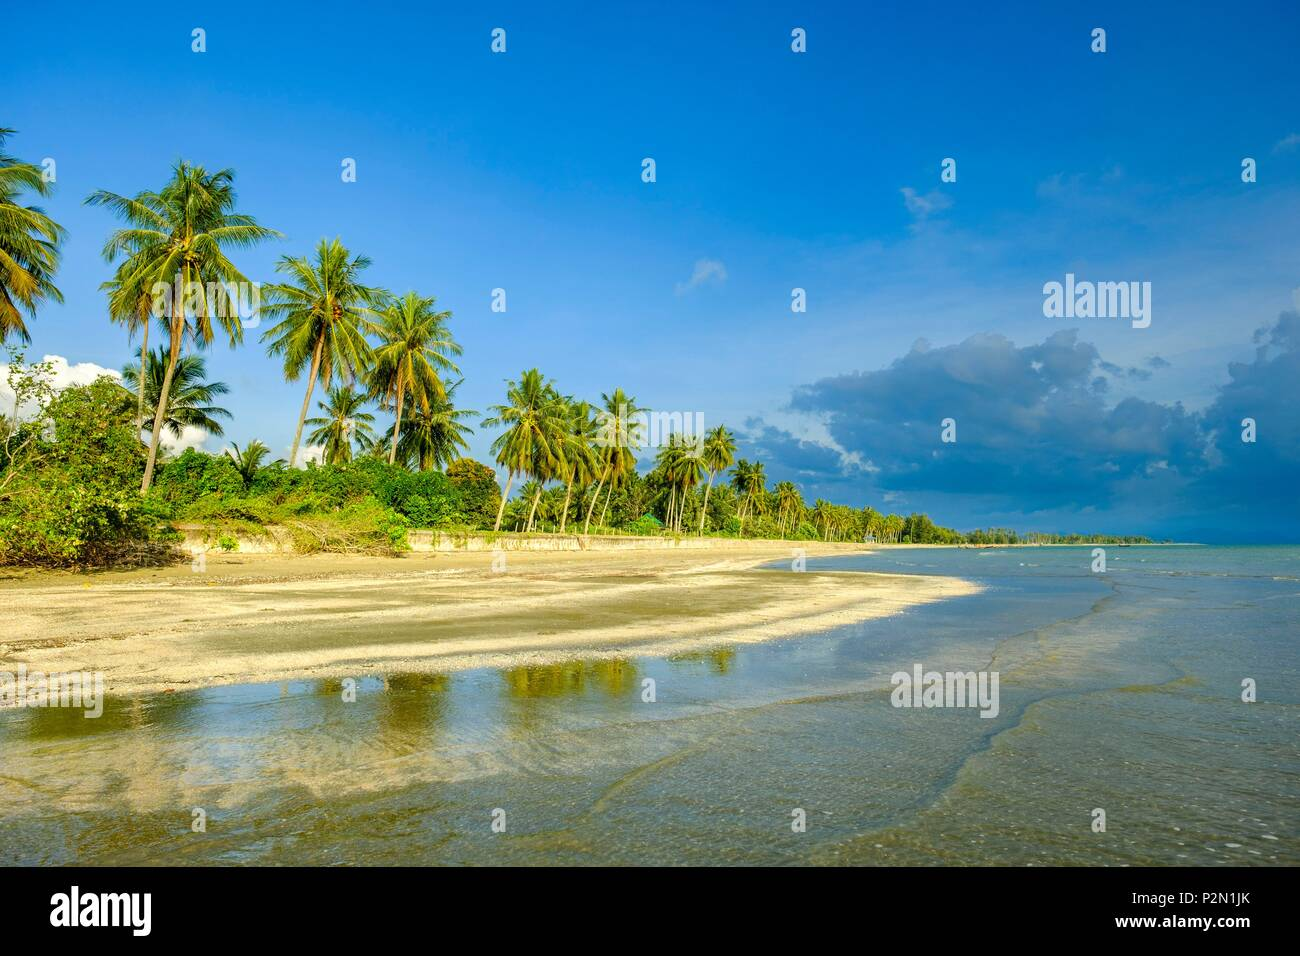 Thailand, Trang province, Ko Sukorn island, the long beach of the south-west coast Stock Photo